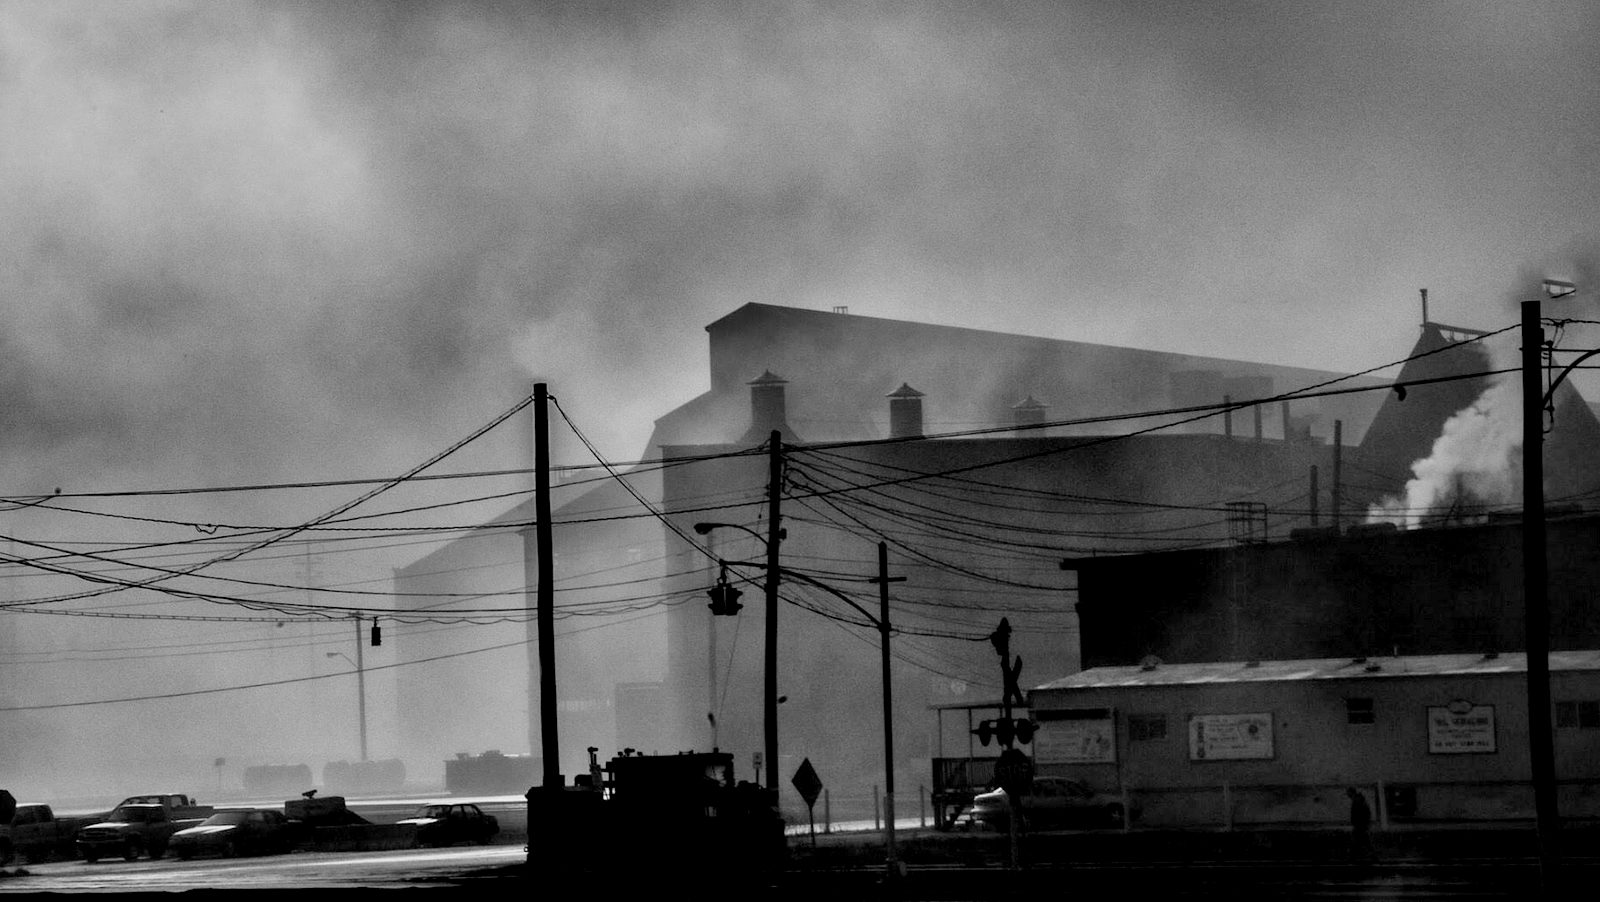 The steelmaking furnaces at Sparrows Point. (J.M. Giordano)